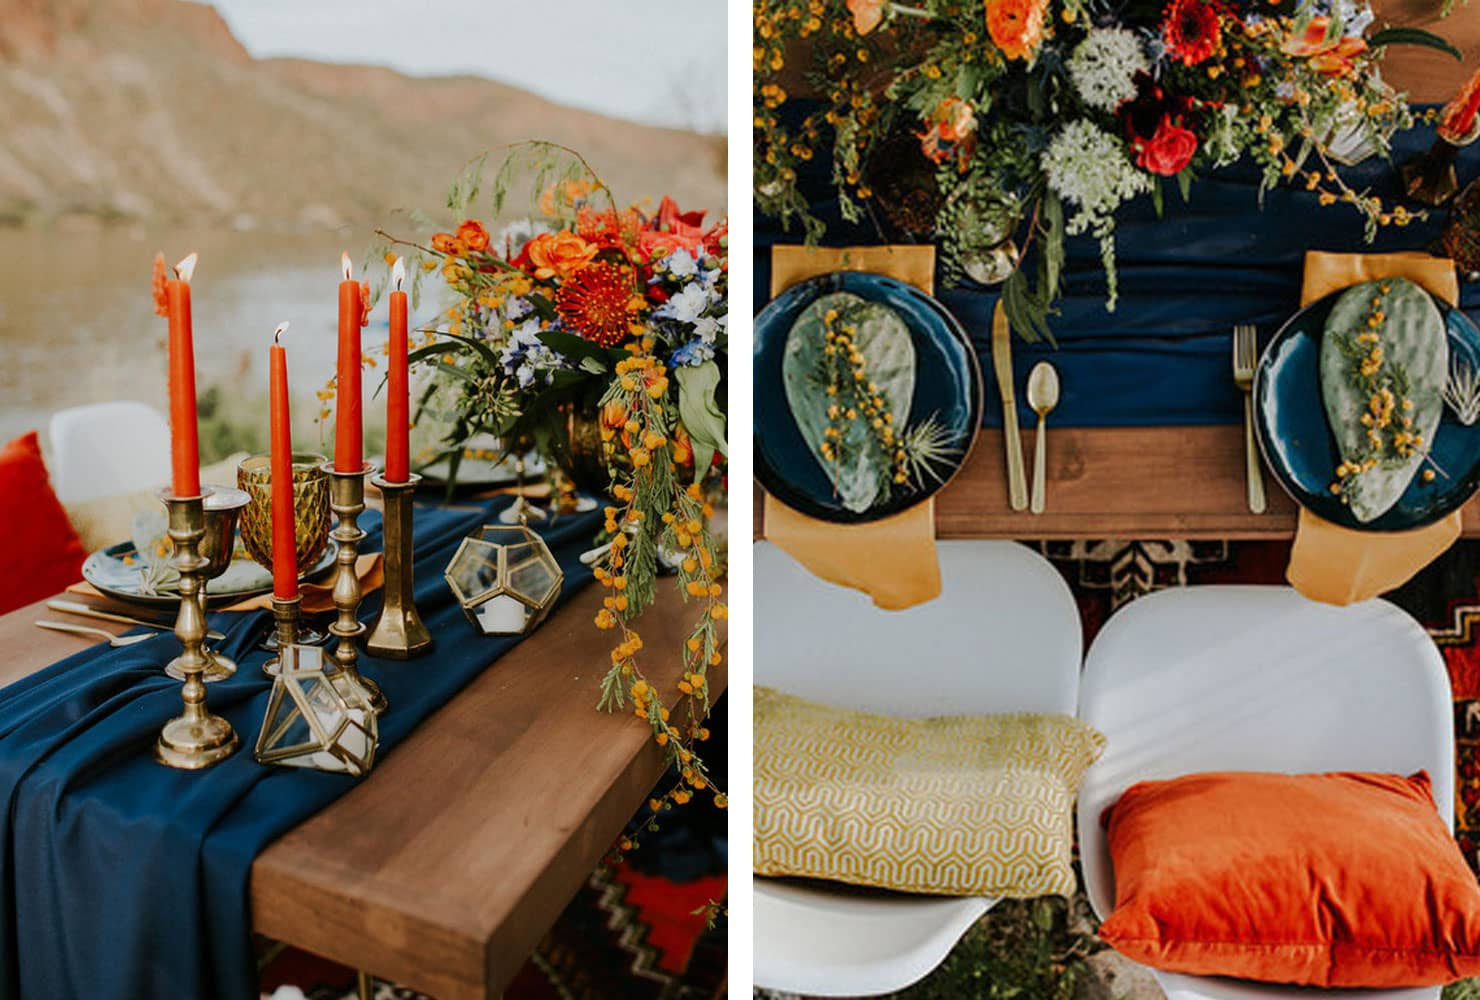 sweetheart table ideas for every season shutterfly pops color accent your focus runner dark blue and plates with orange florals candles piece nesting set patio door floor trim